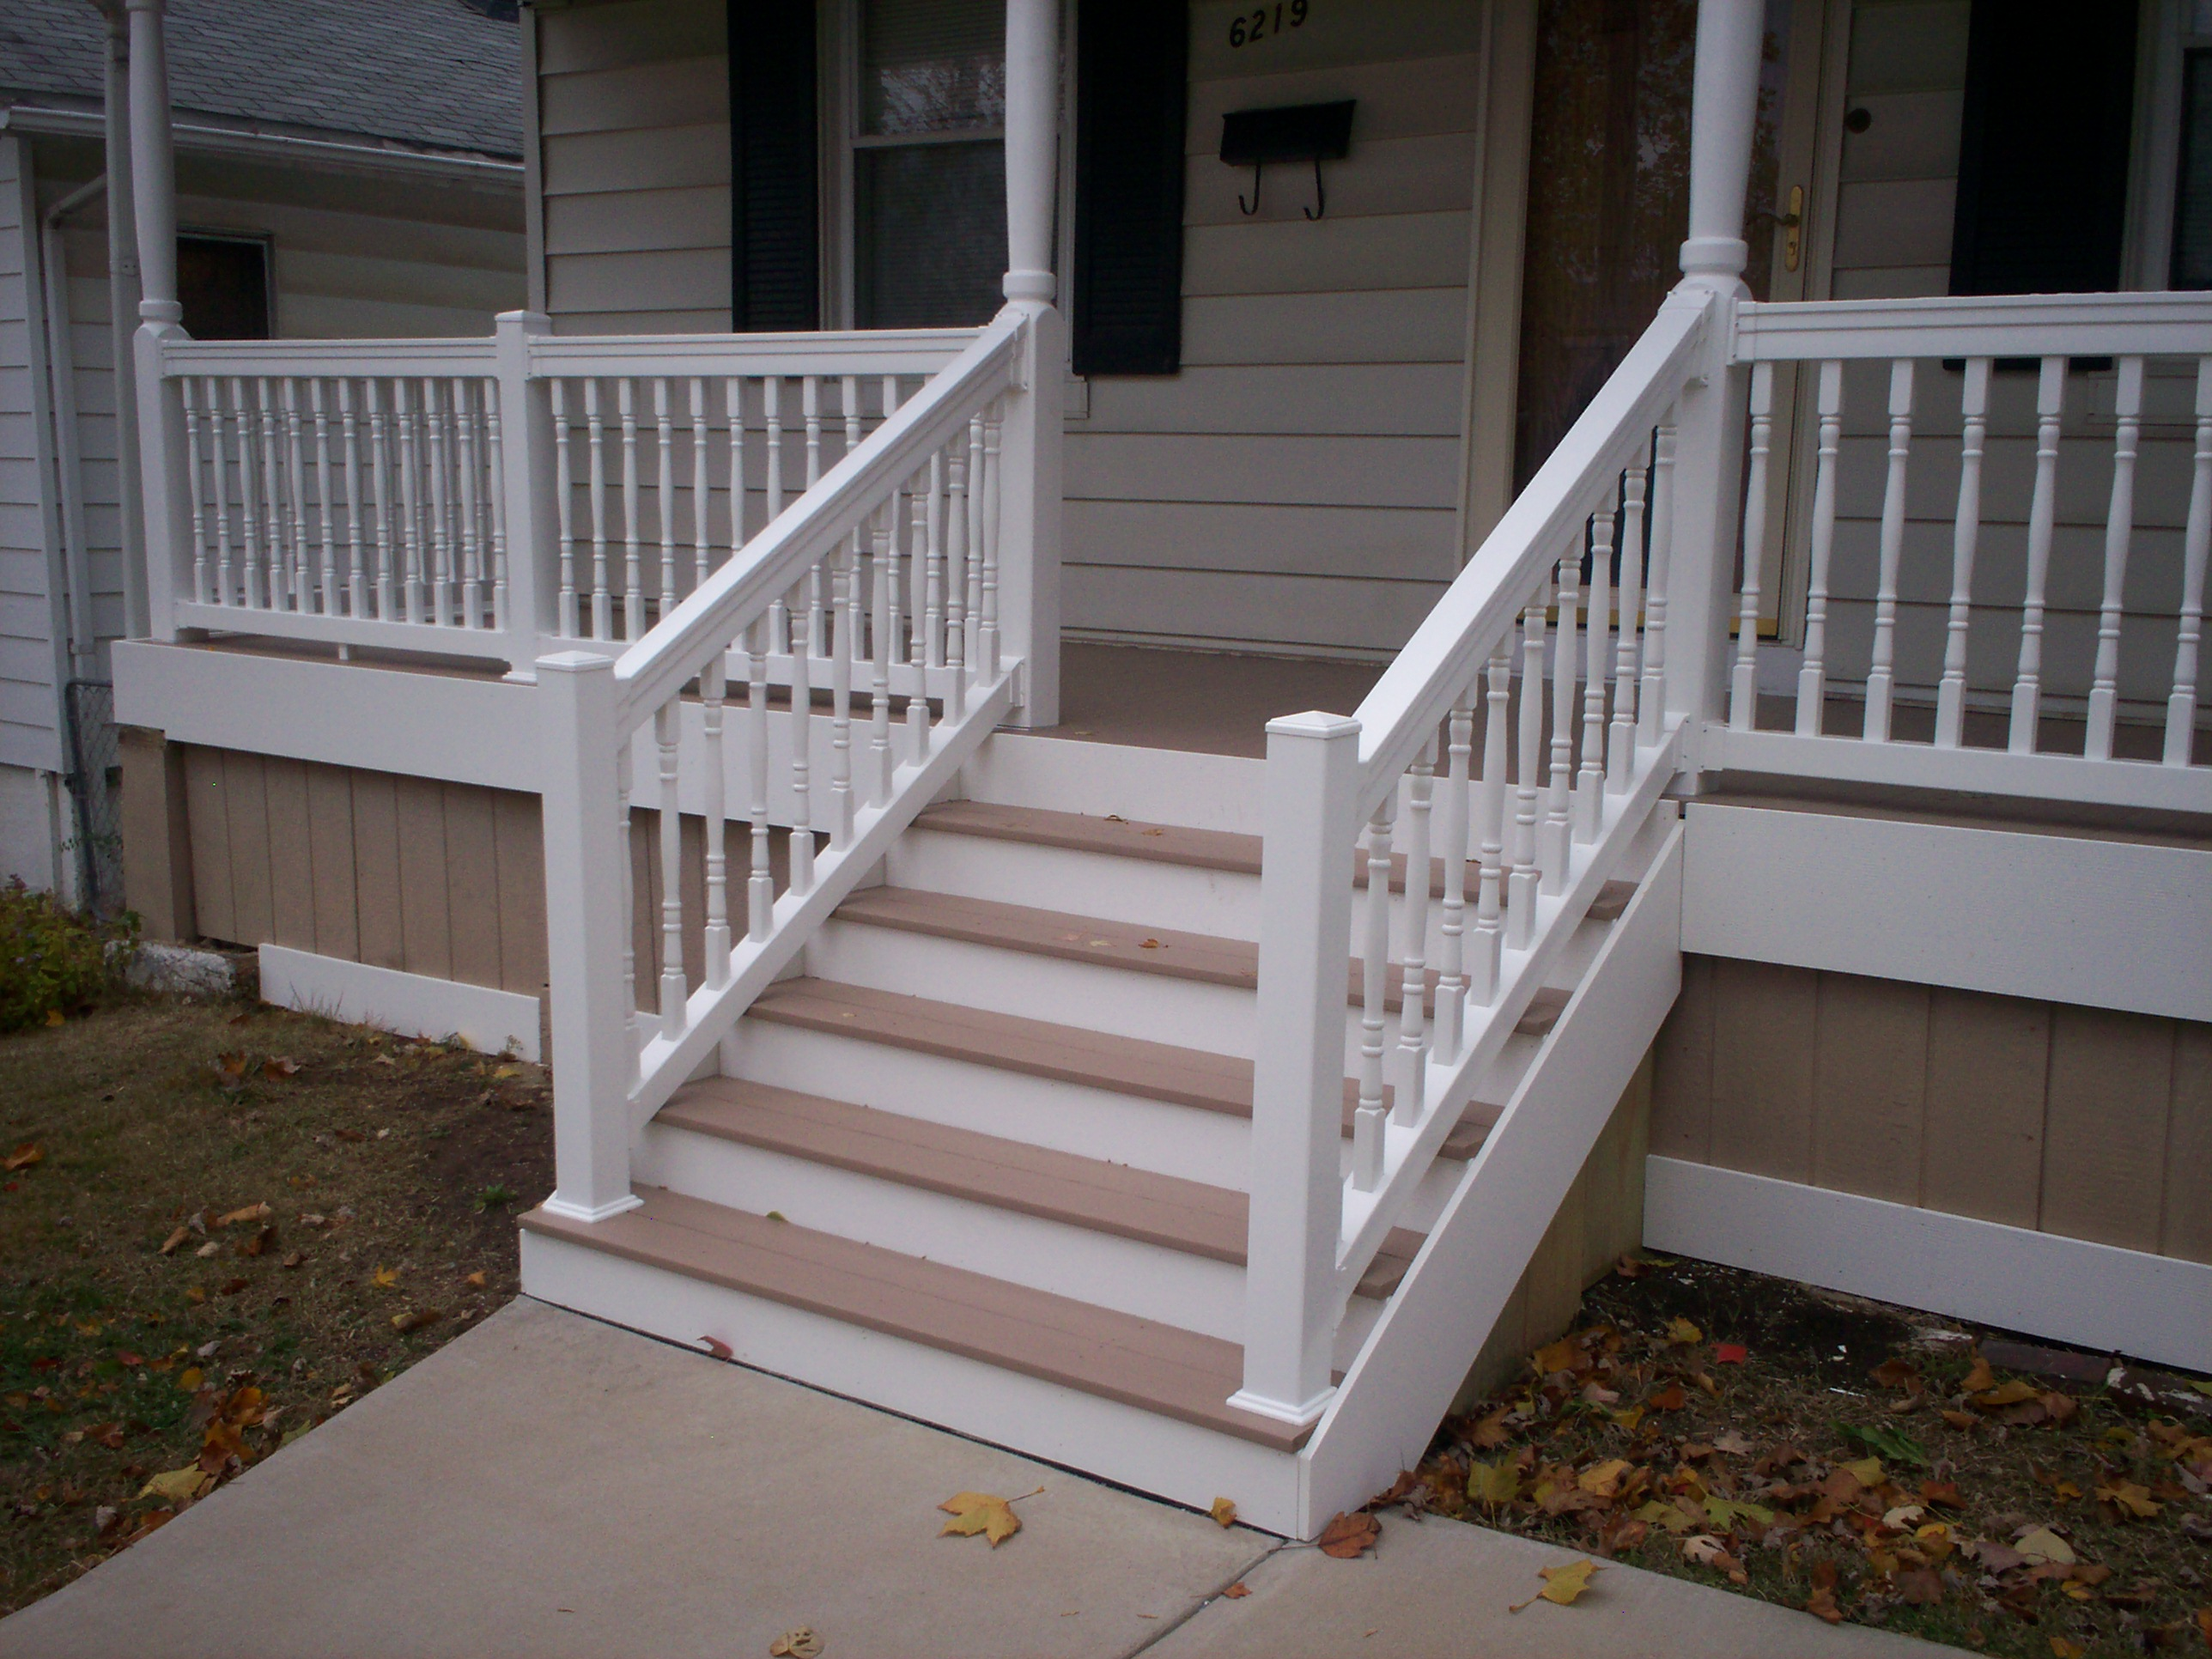 New Composite Deck And Railings Diy Pinterest Railings Brick Walkway And Decking